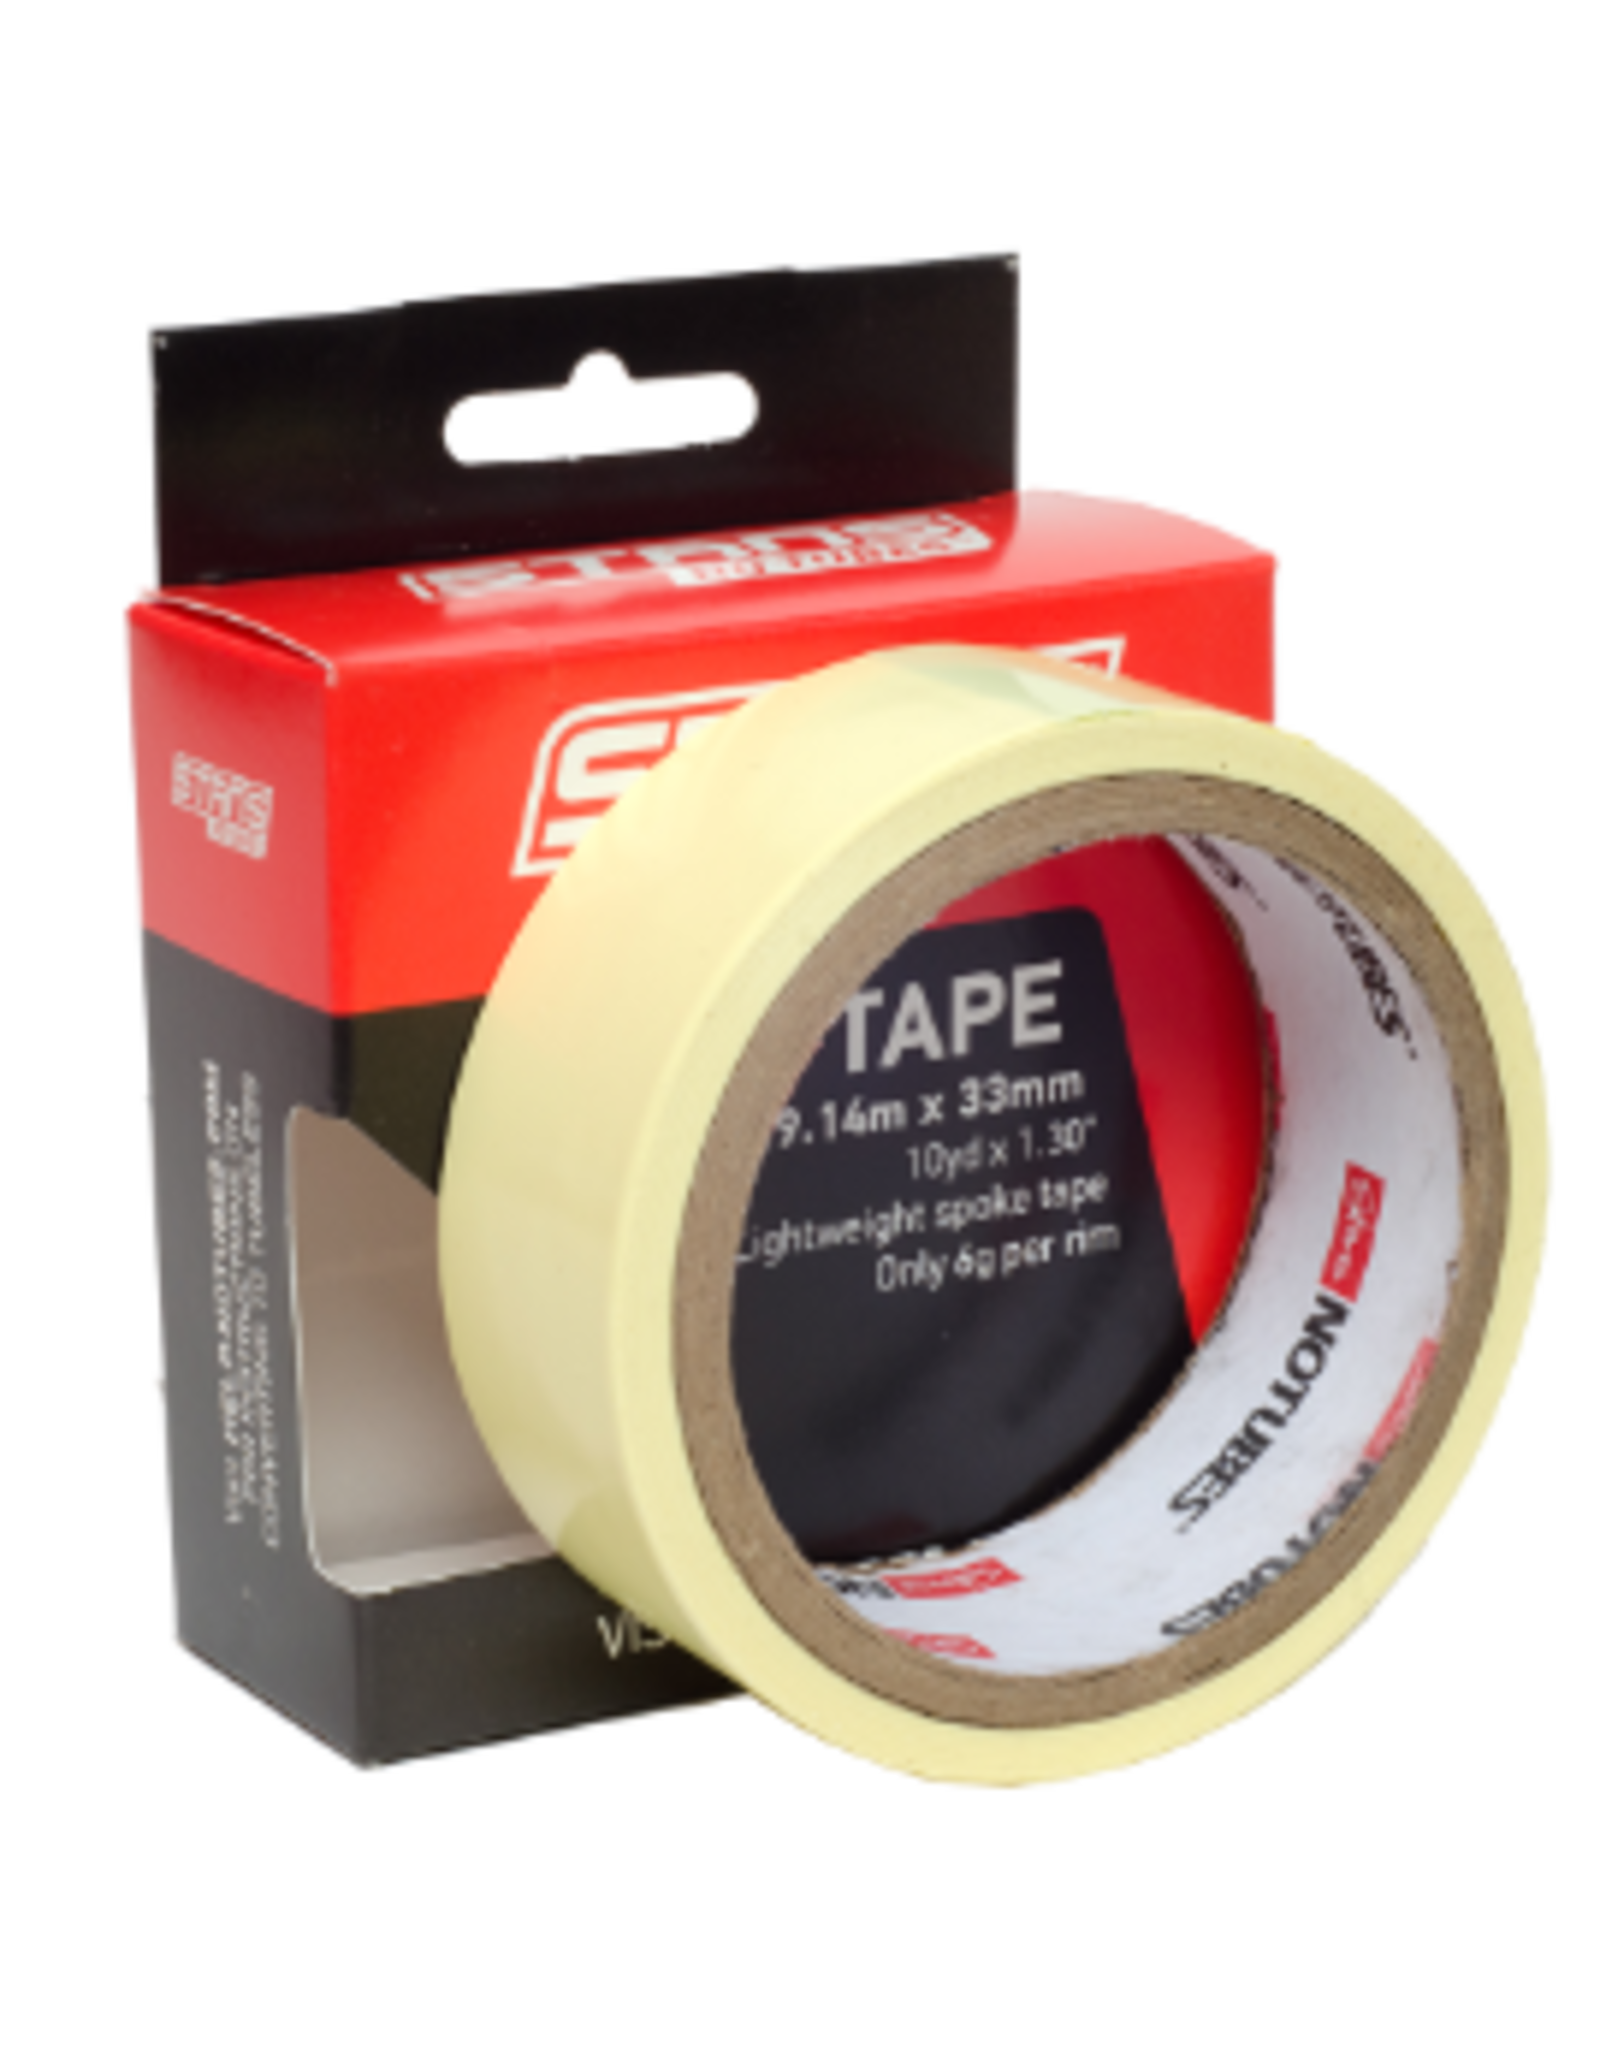 Stans No Tubes RIM TAPE STANS NO TUBES TUBELESS 10YD X 33MM